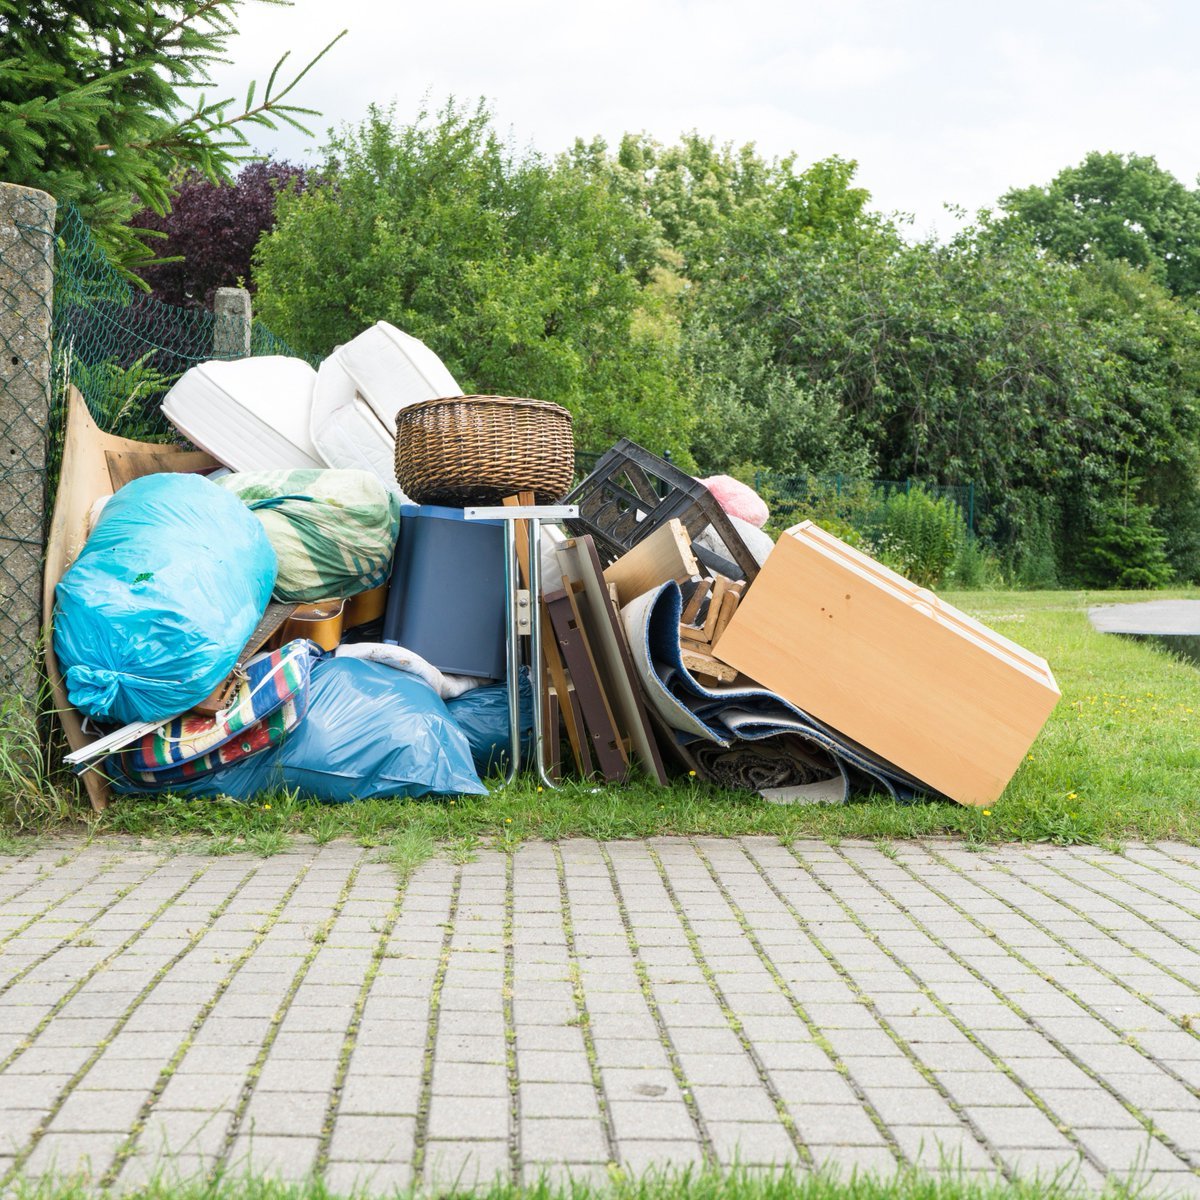 After a #springcleaning session or major #homerenovation project, most #homeowner faced with more #homewaste than they know what to do with  @onlinebinhire, we offer the best-priced #skipbinhire services in #Frankston  Order your skip online: https://goo.gl/q85d6f #miniskiphirepic.twitter.com/lGmFK10Mnz